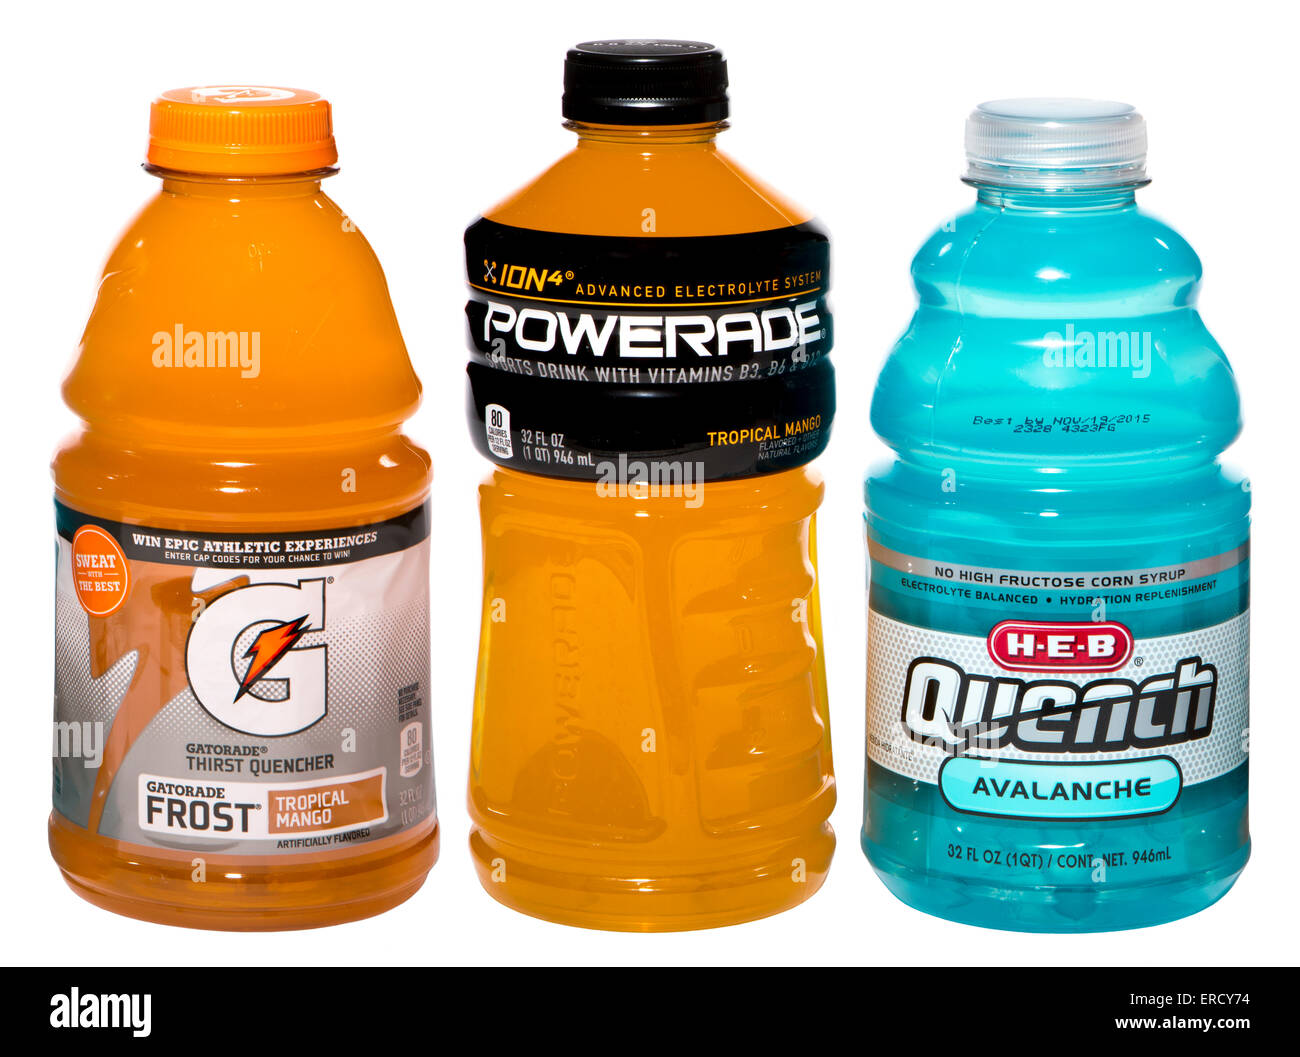 Which country in Europe sales Gatorade - answers.com